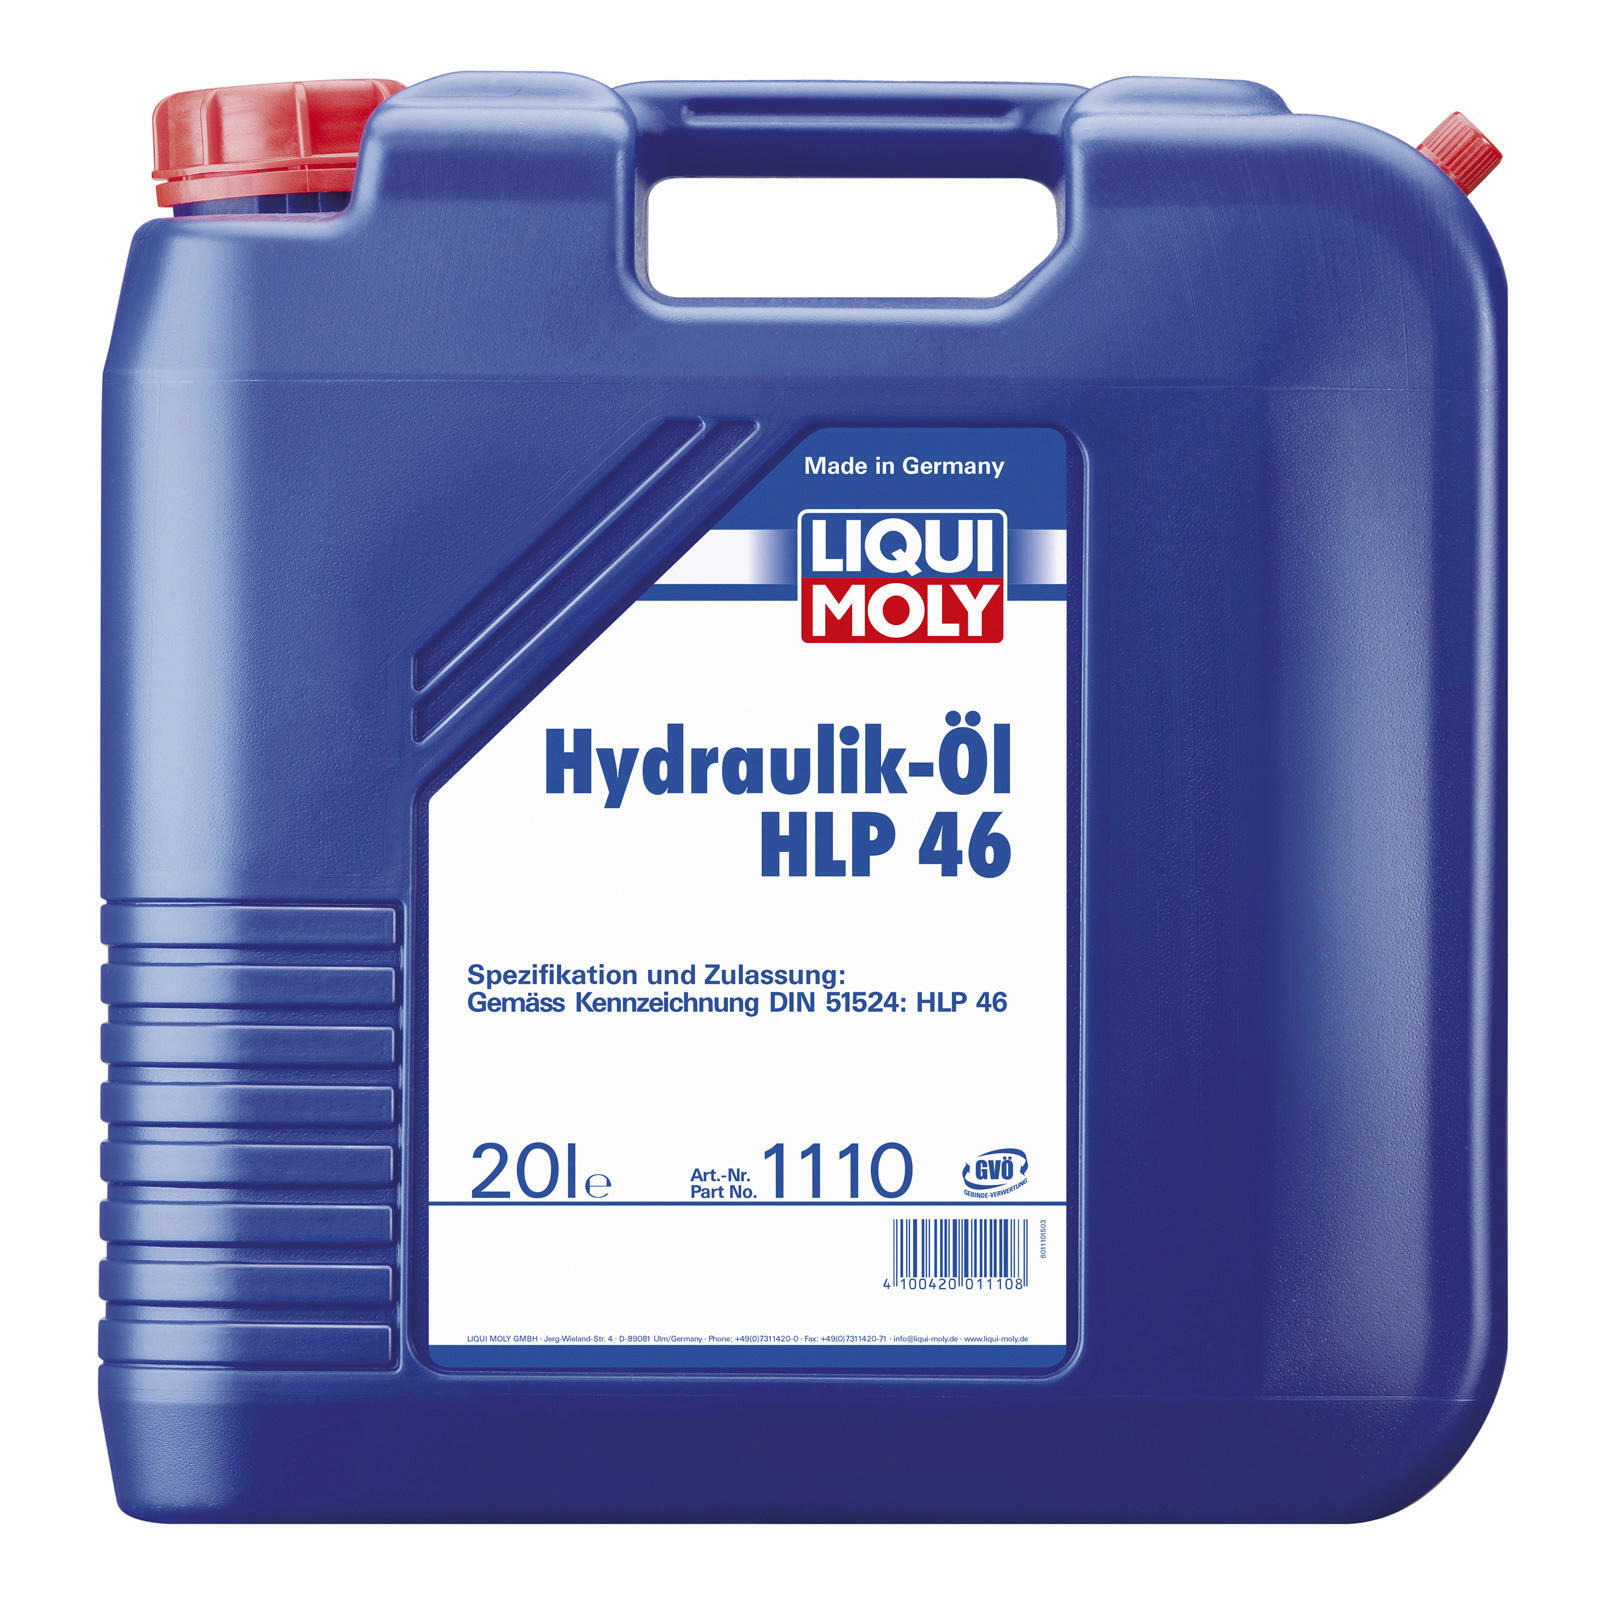 liqui moly hydraulik l hlp 46 20l lott autoteile. Black Bedroom Furniture Sets. Home Design Ideas